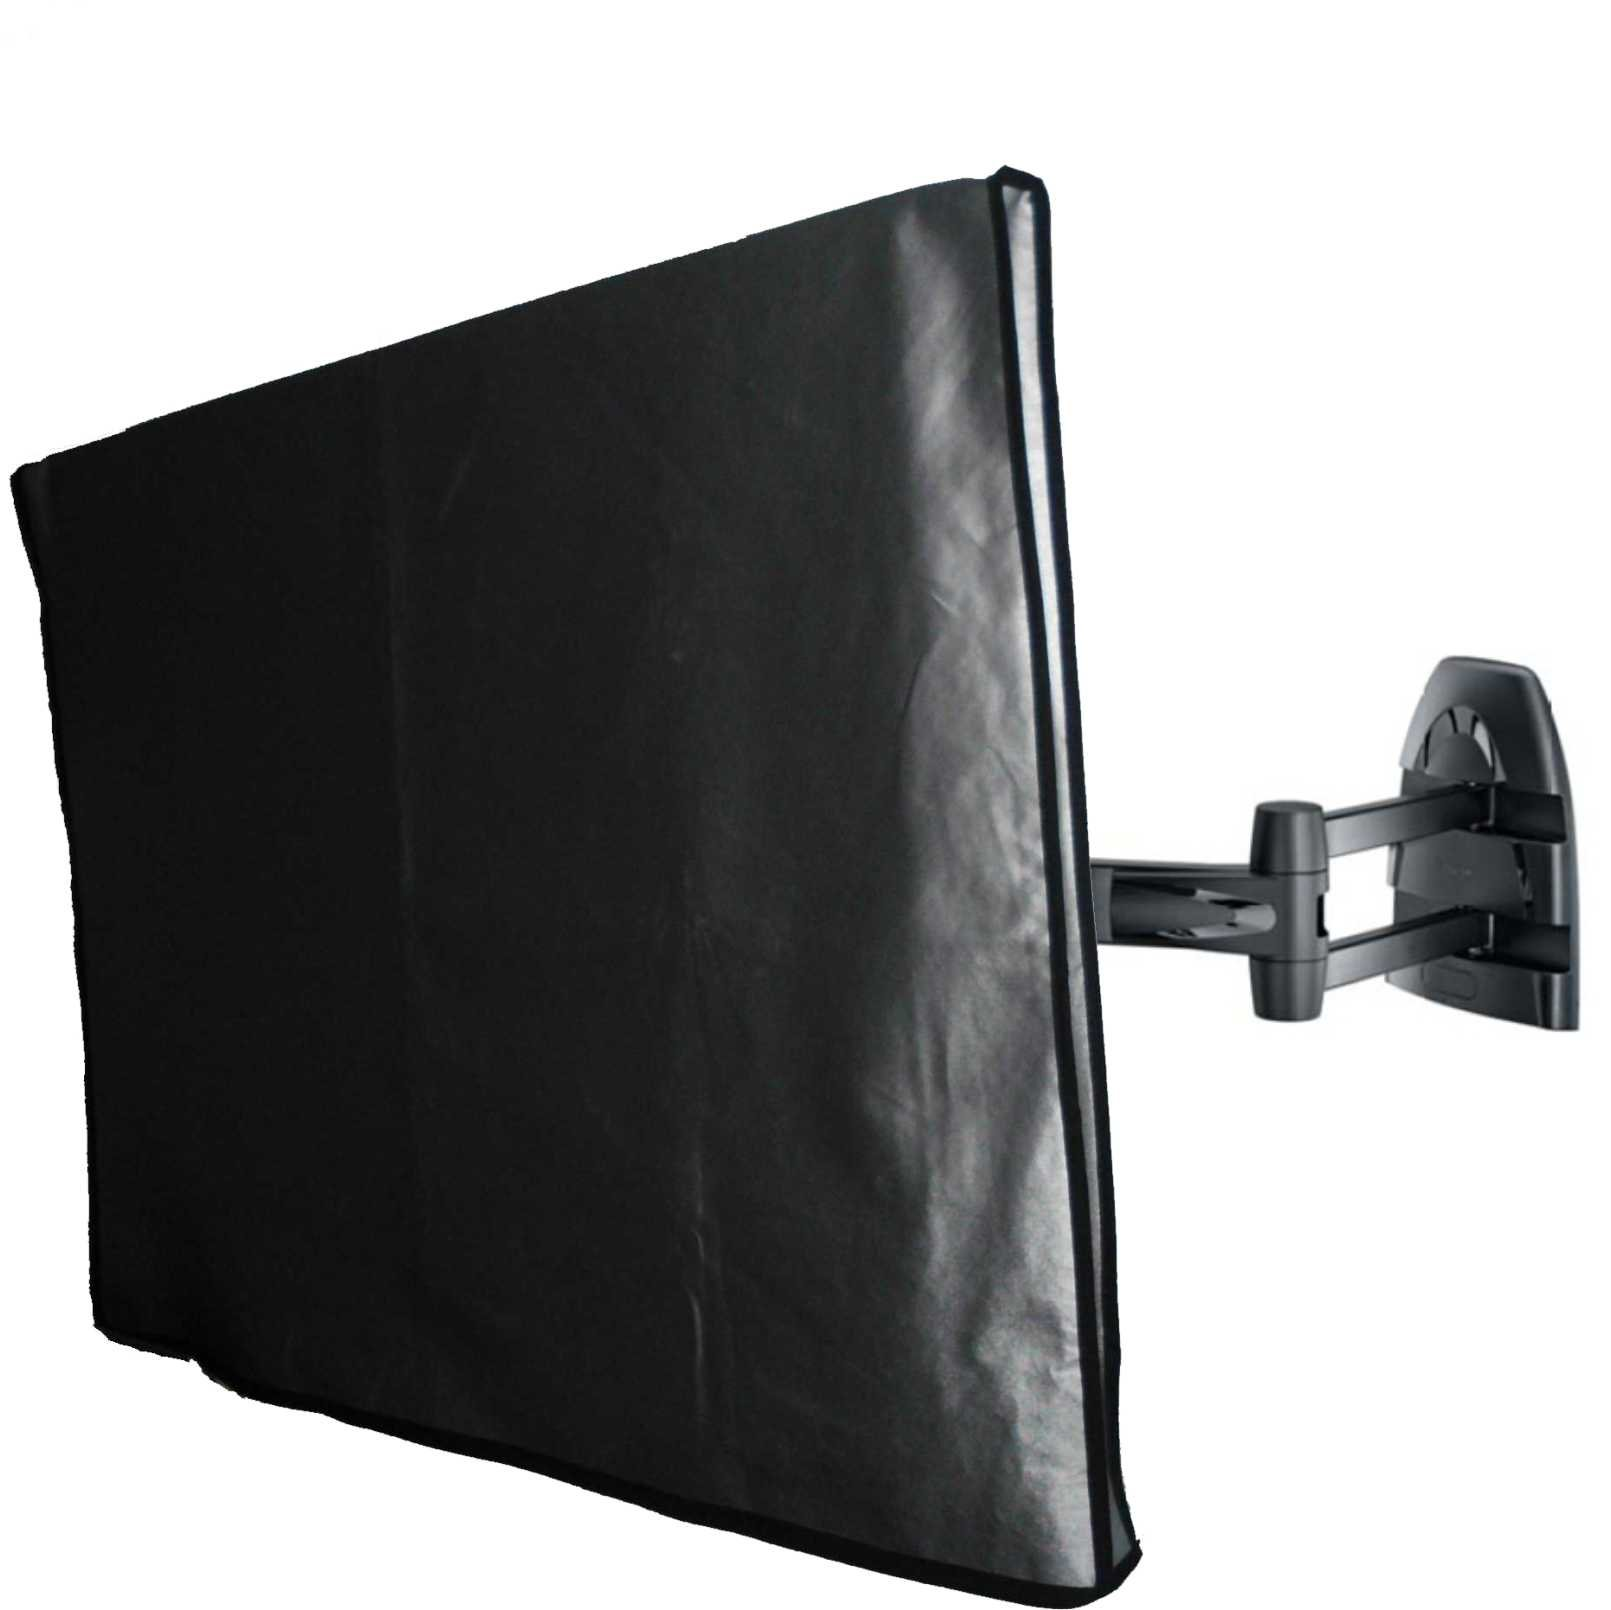 Marine Grade Nylon 32'' TV Dust Cover   (31.75'' wide x 3.75'' deep x 23'' high) Ideal for outdoor locations such as Restaurants, Hotels, Marinas or Poolside Locations. by Viziflex (Image #2)